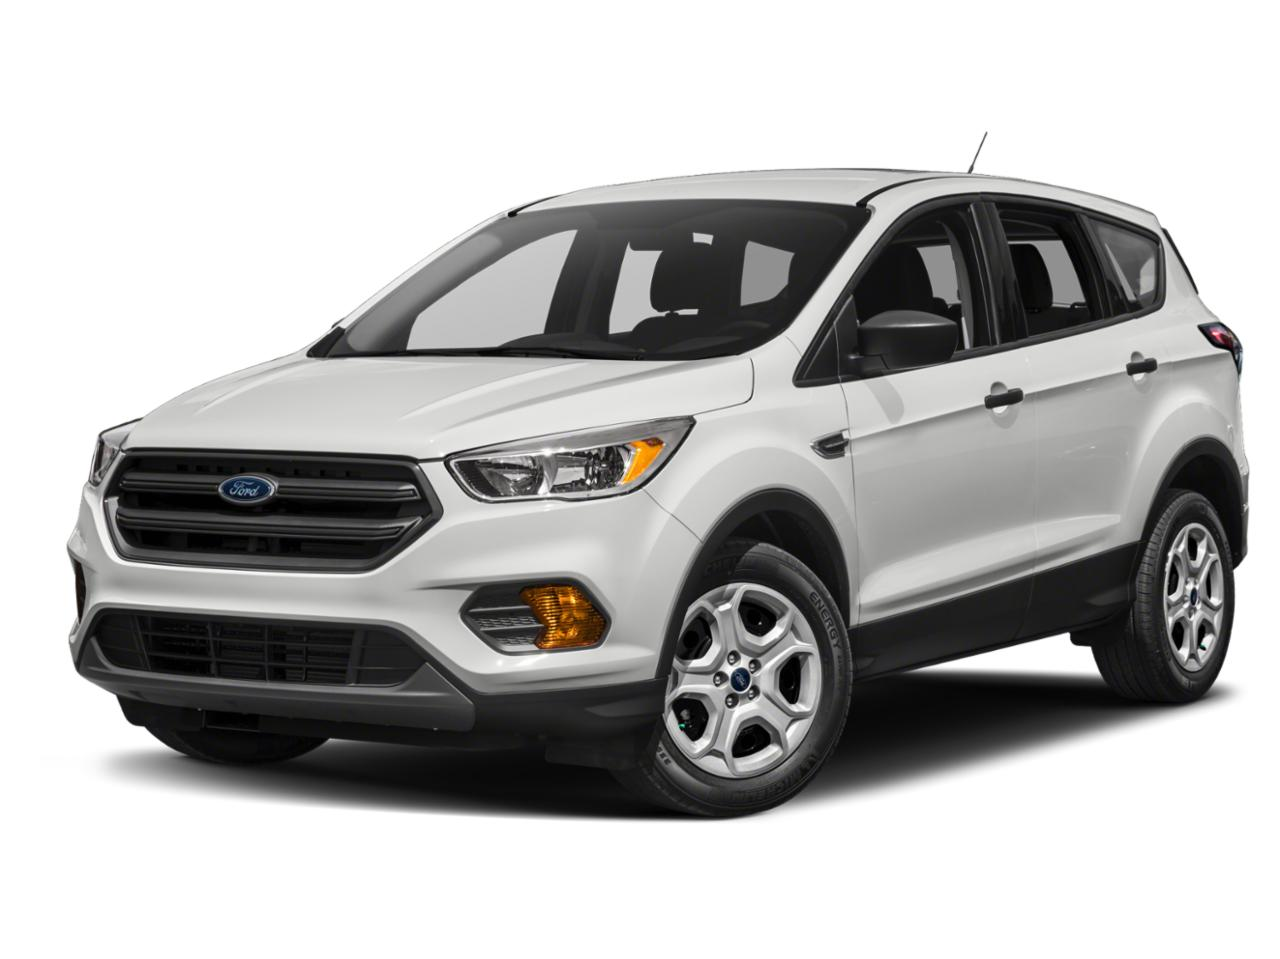 2018 Ford Escape Vehicle Photo in Akron, OH 44320